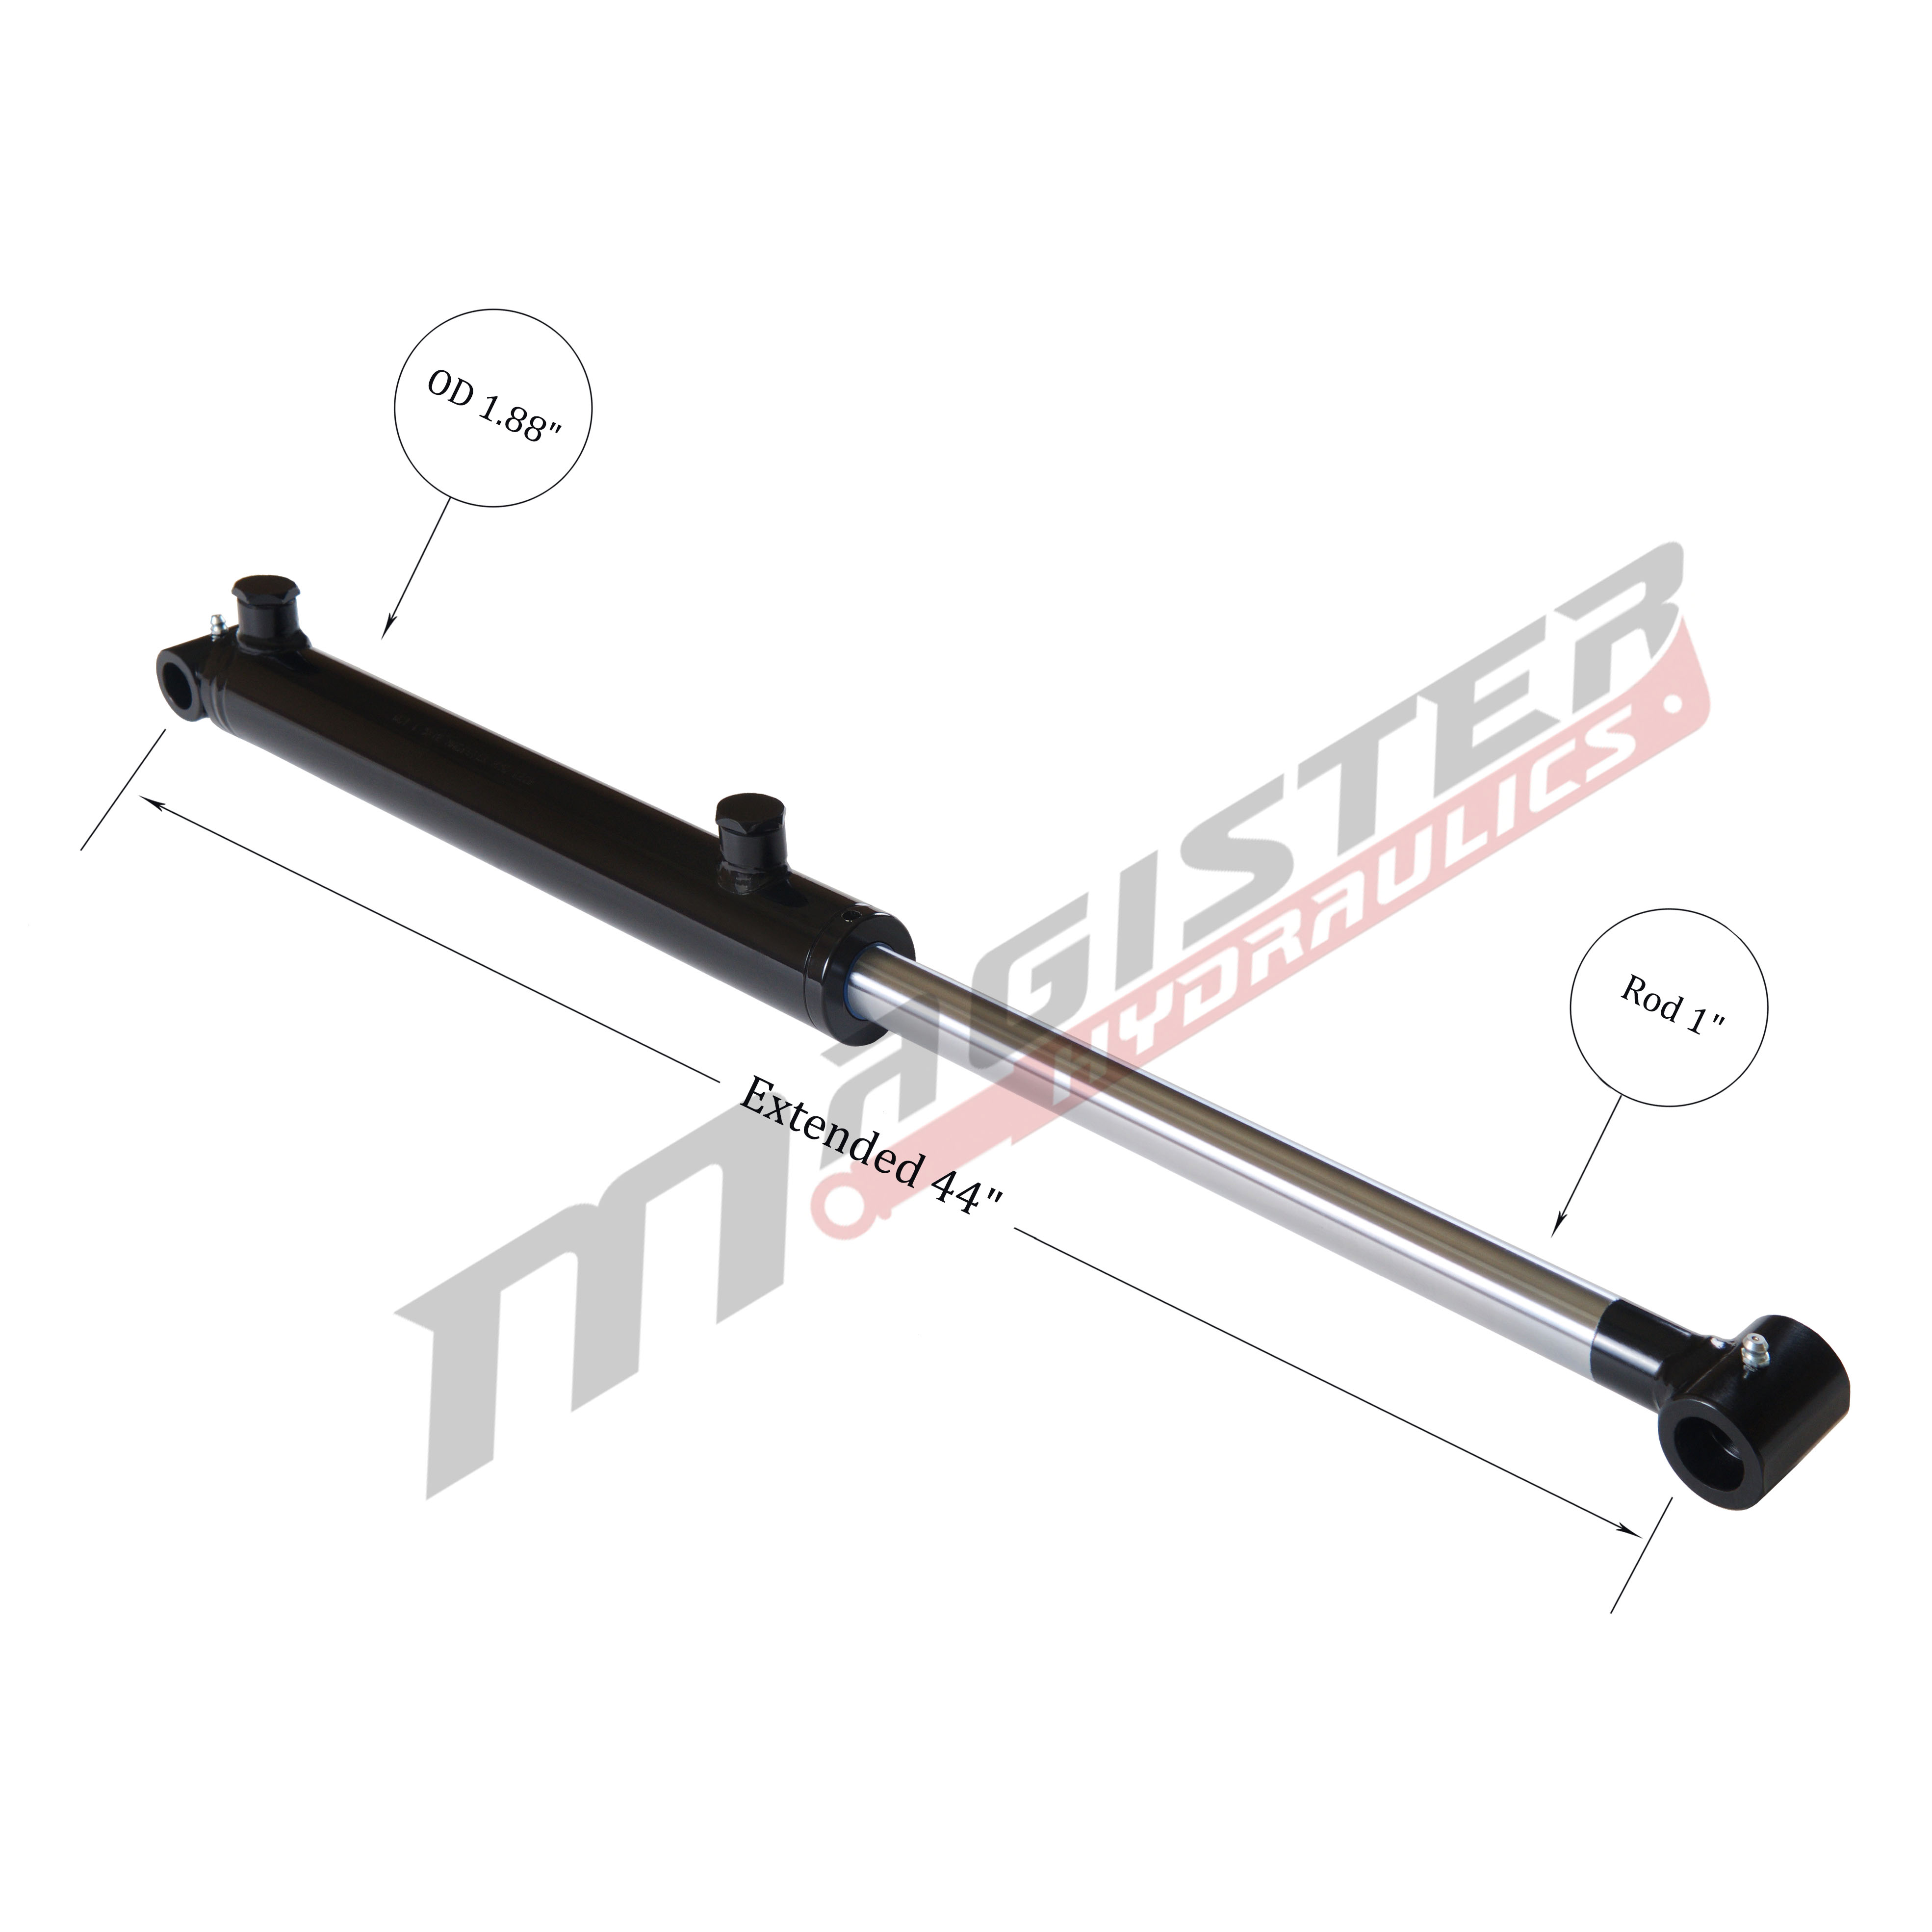 1.5 bore x 18 stroke hydraulic cylinder, welded cross tube double acting cylinder | Magister Hydraulics